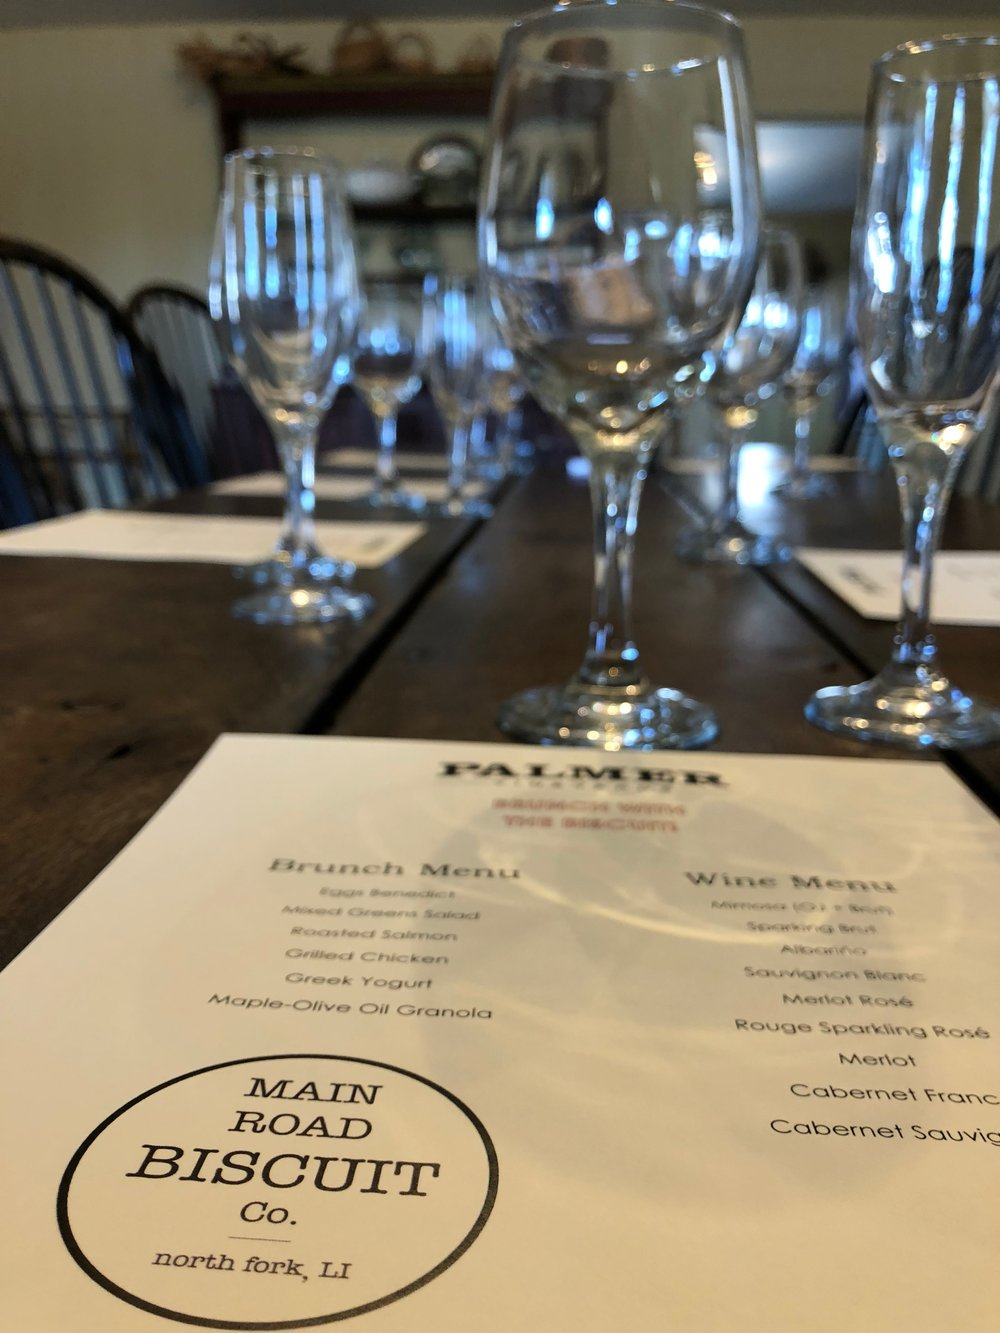 wine dinner menu with wine glasses